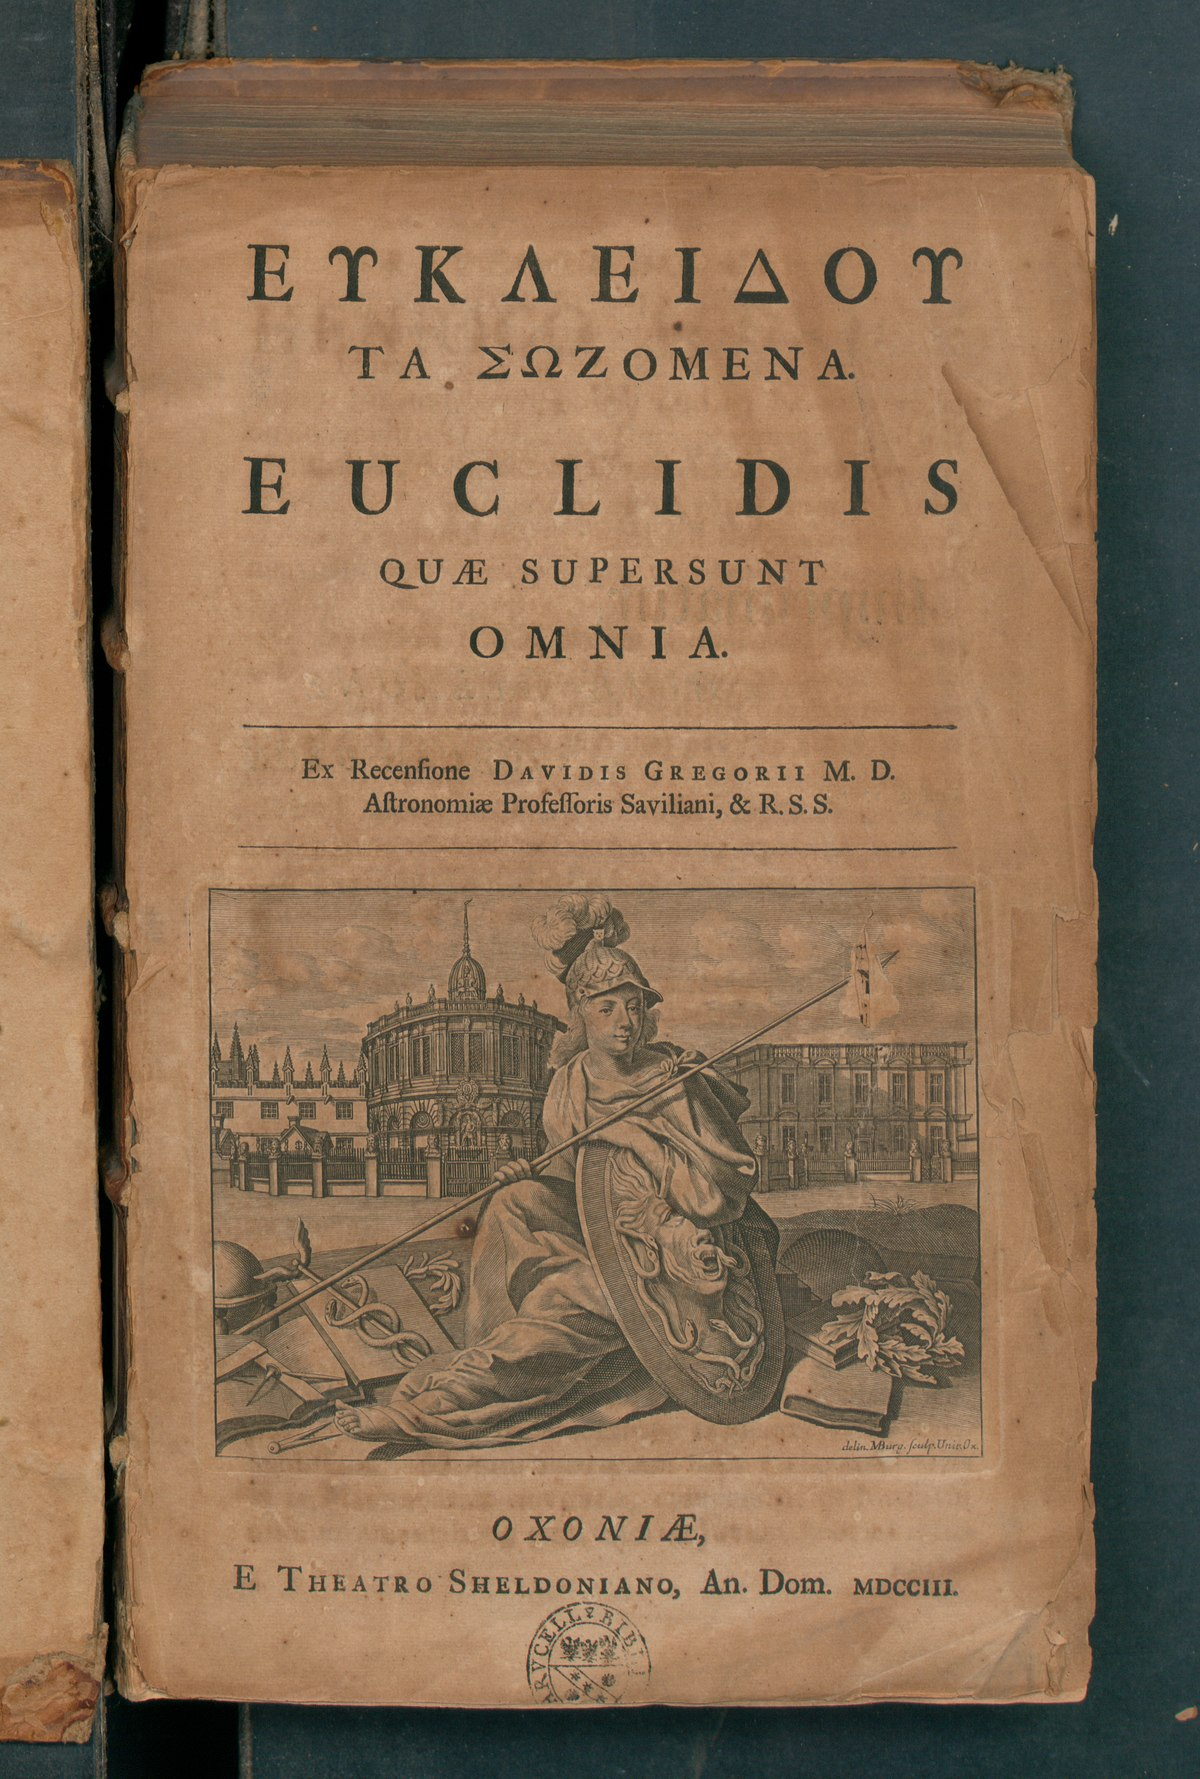 euclid of alexandria Euclid of alexandria (greek: eukleides) (circa 365-275 bc) was a greek mathematician who lived in the 3rd century bc in alexandria his most famous work is the.